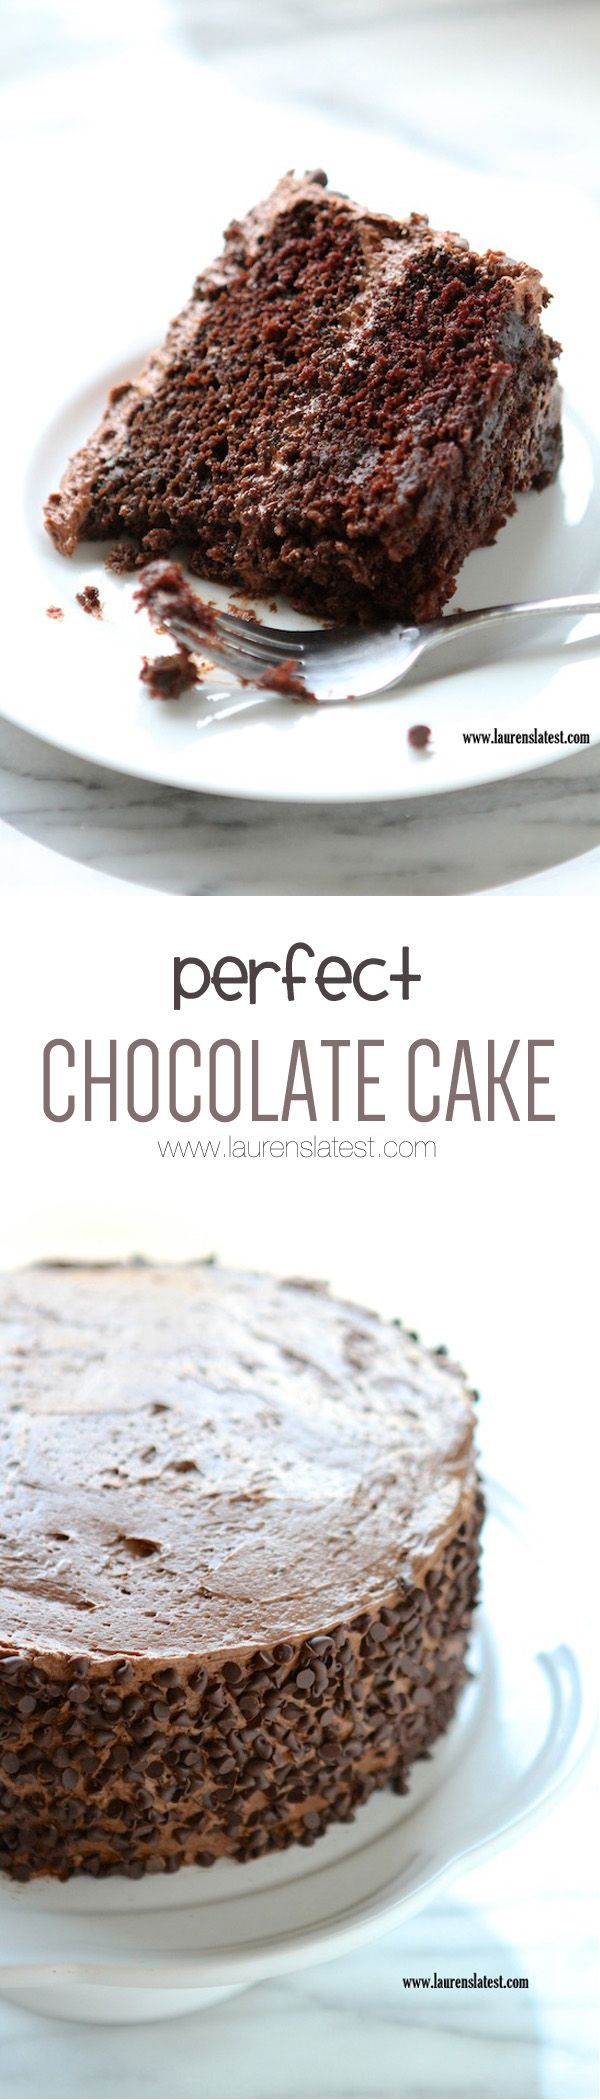 Perfect Chocolate Cake:  2 cups milk. 2 teaspoons white vinegar. 2/3 cup canola oil. 1 1/2 cups granulated sugar. 4 teaspoons vanilla extract. 2 cups all purpose flour. 2/3 cup cocoa powder, sifted. 1 1/2 teaspoon baking soda. 1 teaspoon baking powder. pinch of salt.   Preheat oven to 350 degrees. In a large bowl, whip oil and sugar together. Stir in vanilla. In a measuring cup, stir almond milk and vinegar together. Set aside to curdle. In a different bowl, stir all dry ingredients together…